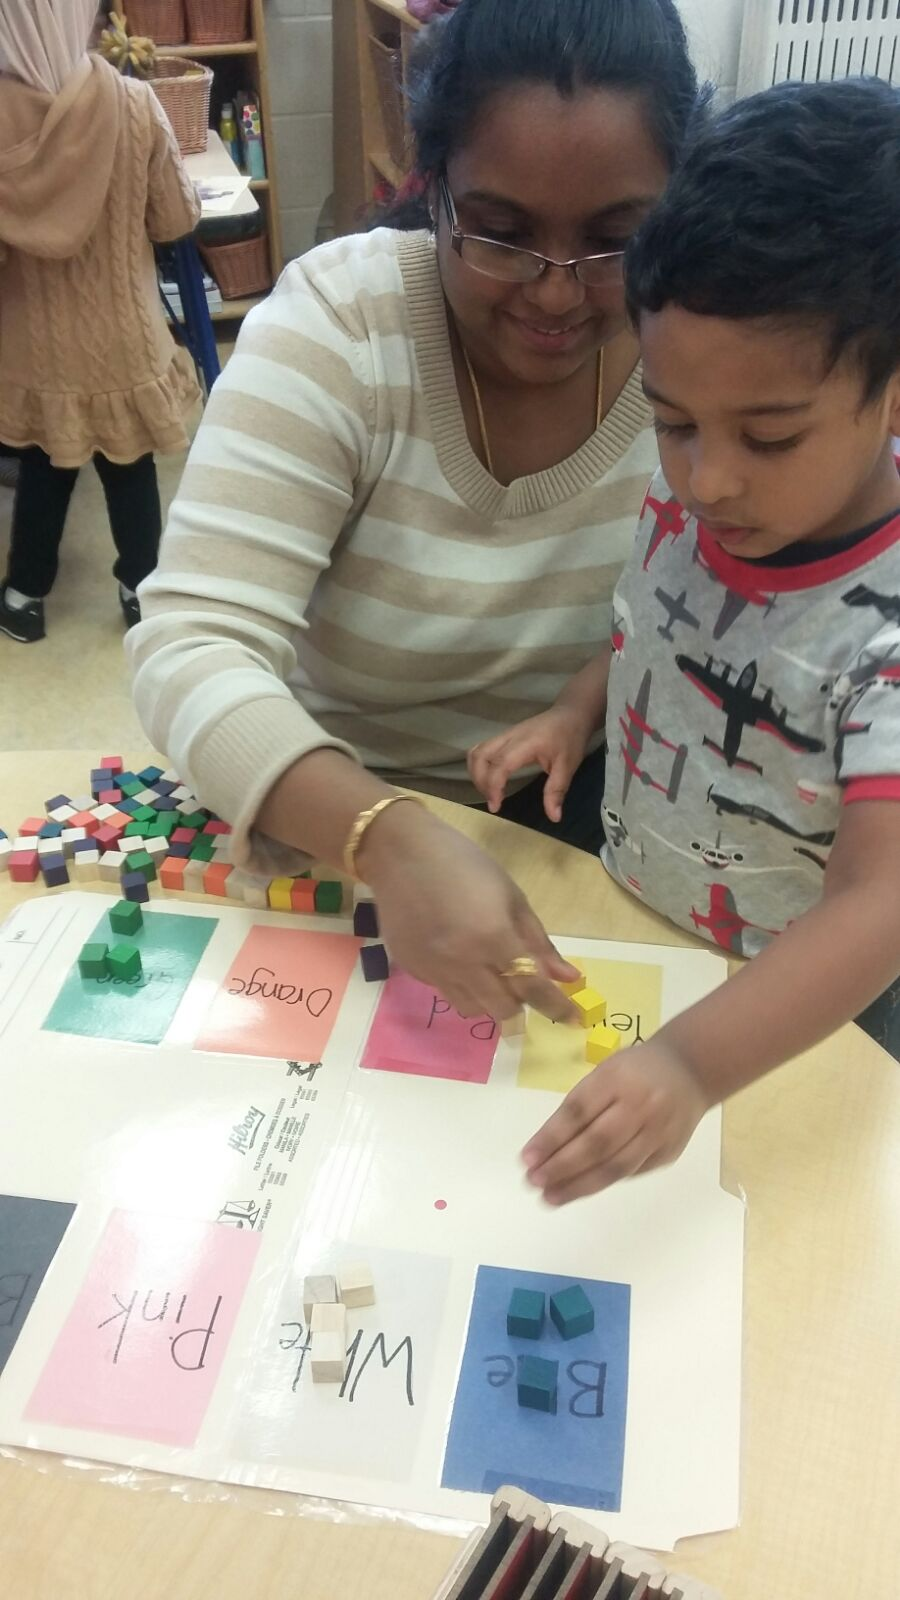 Parent and child using a file folder game